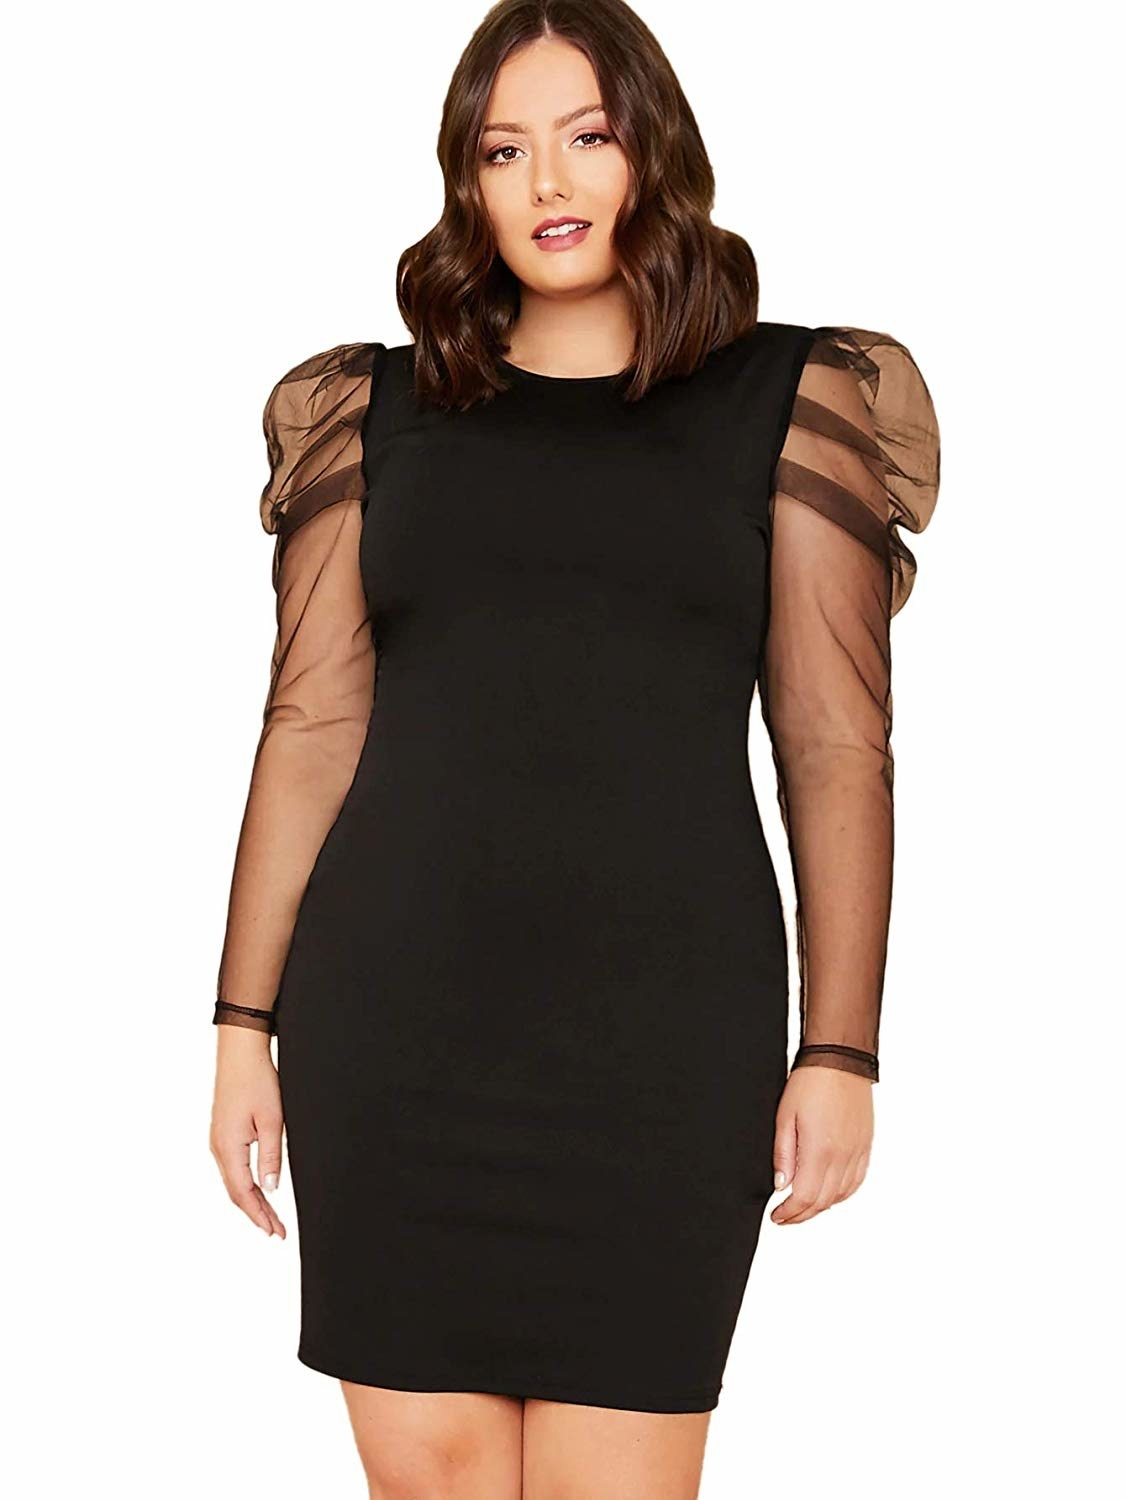 A model in the black mini dress with sheer puff-shoulder sleeves